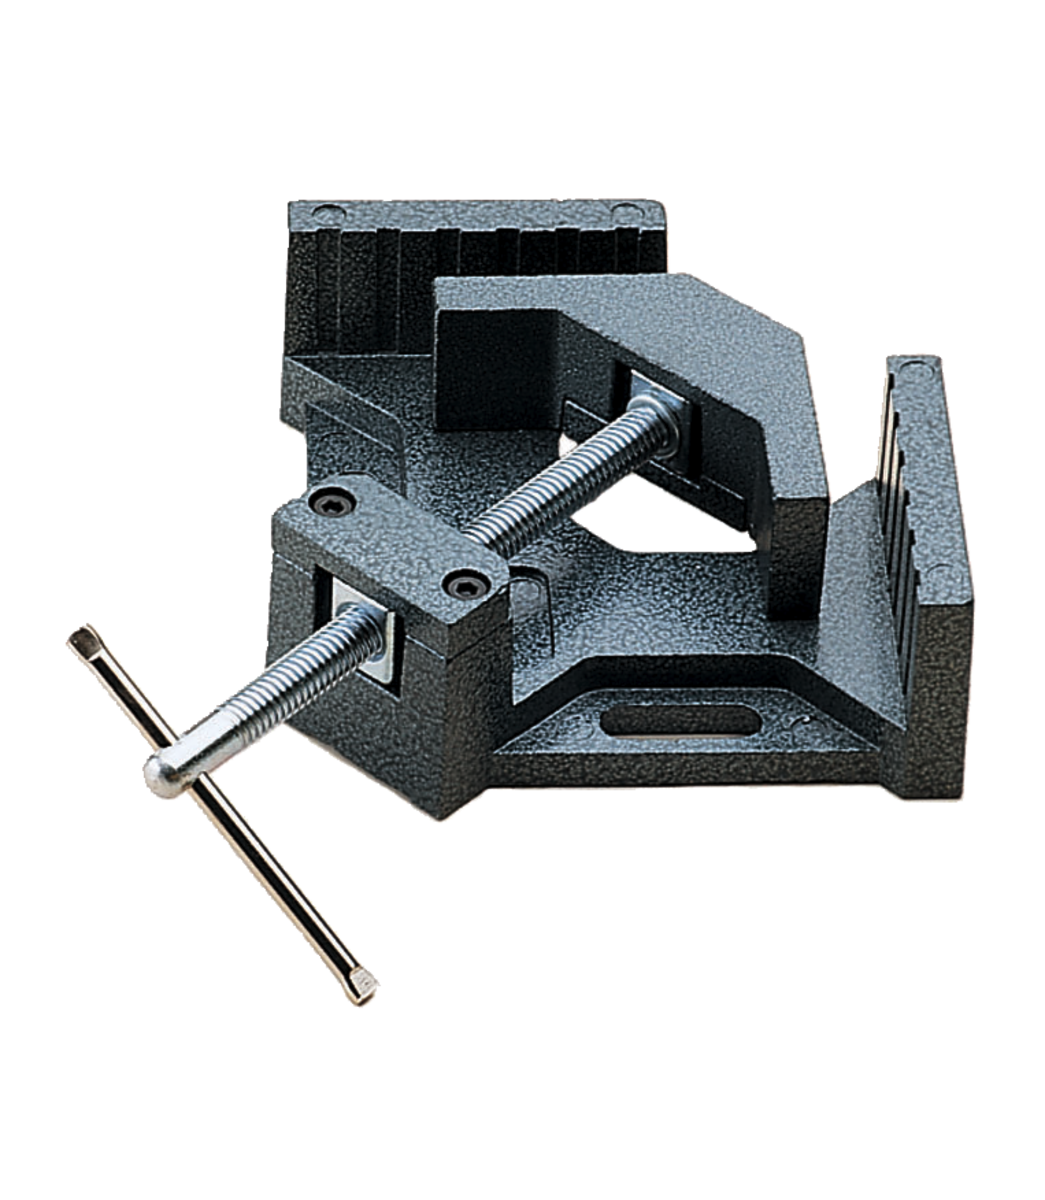 HEAVY DUTY STEEL ANGLE CLAMPS